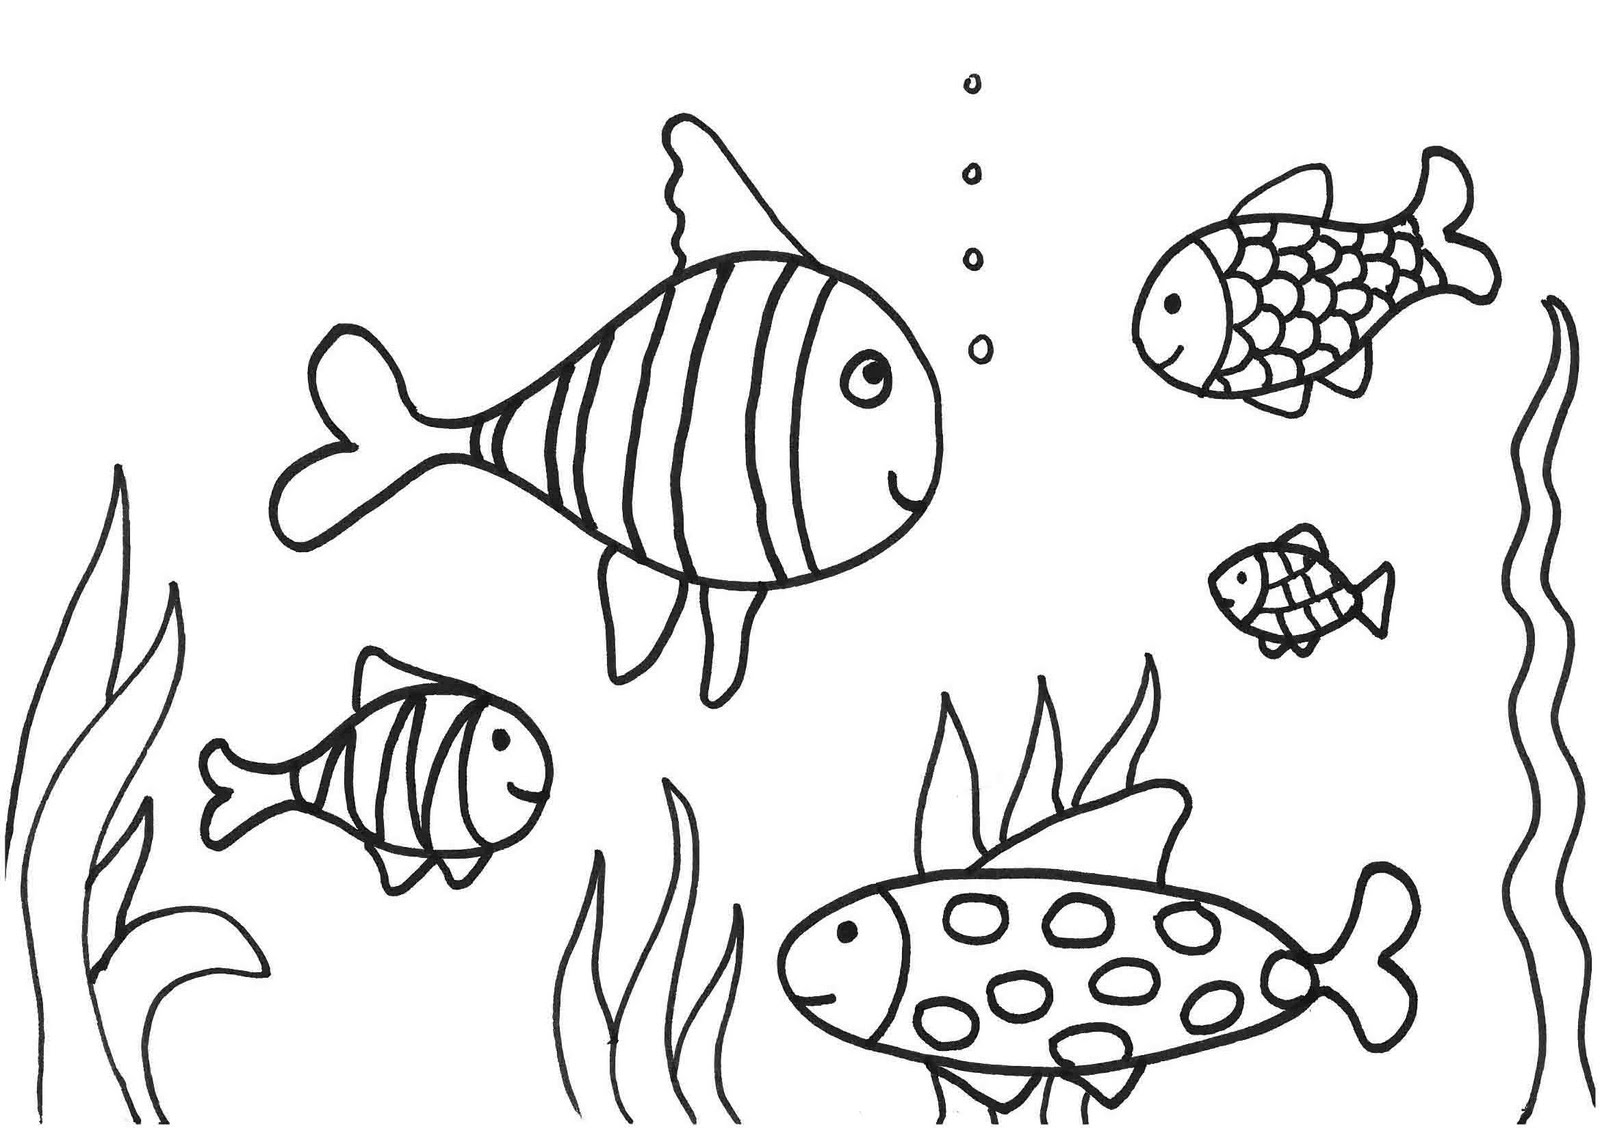 pictures of fish coloring pages print download cute and educative fish coloring pages coloring pictures fish of pages